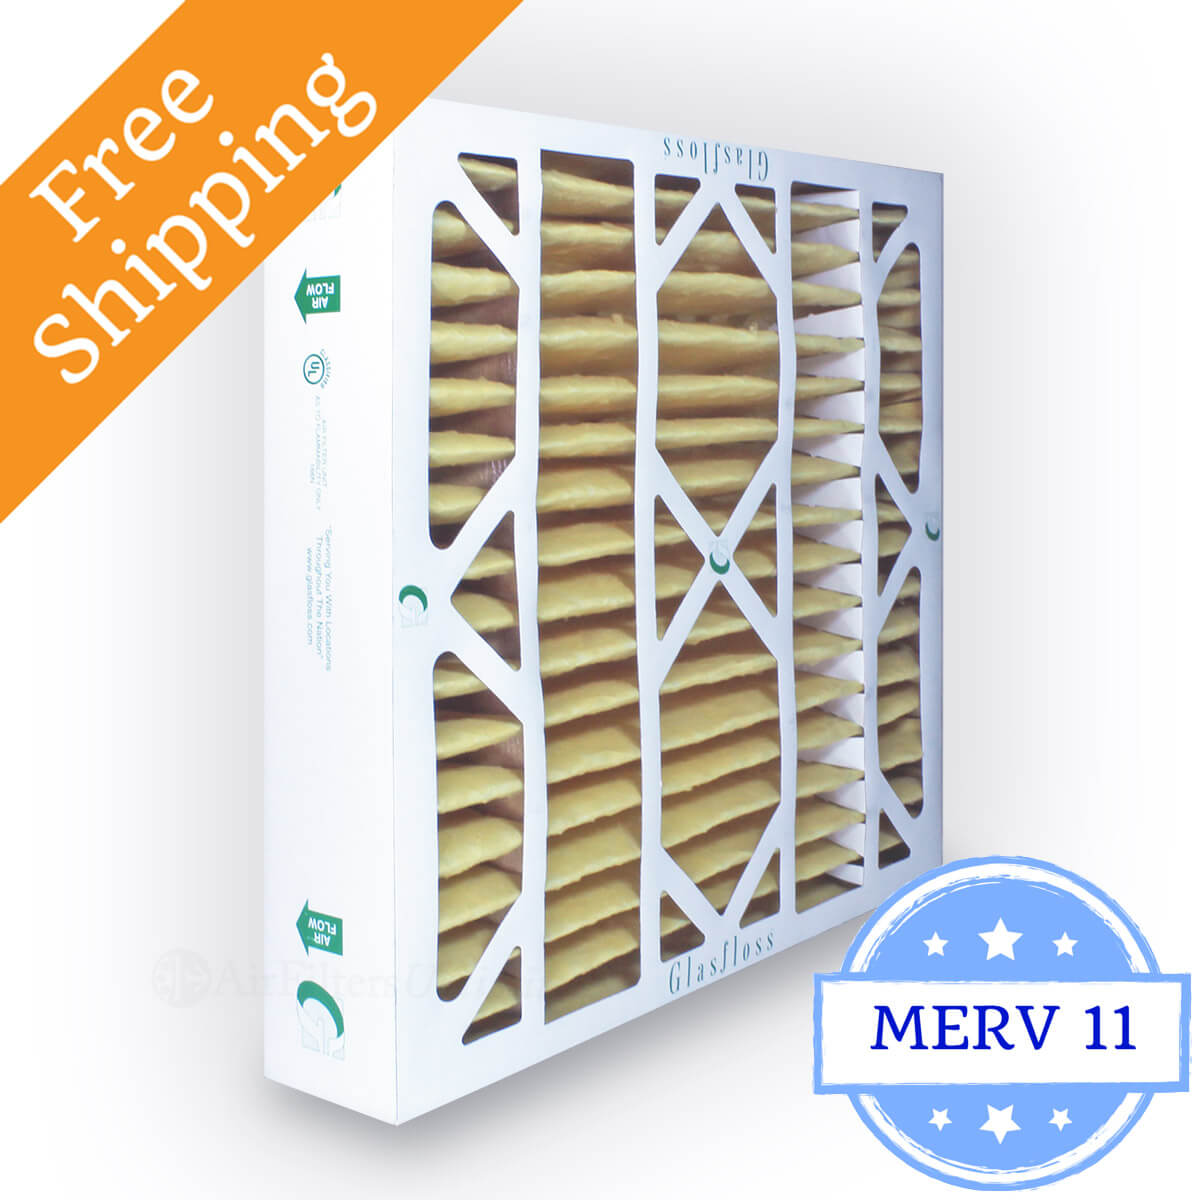 Glasfloss 20x20x4 Air Filter MR-11 Series